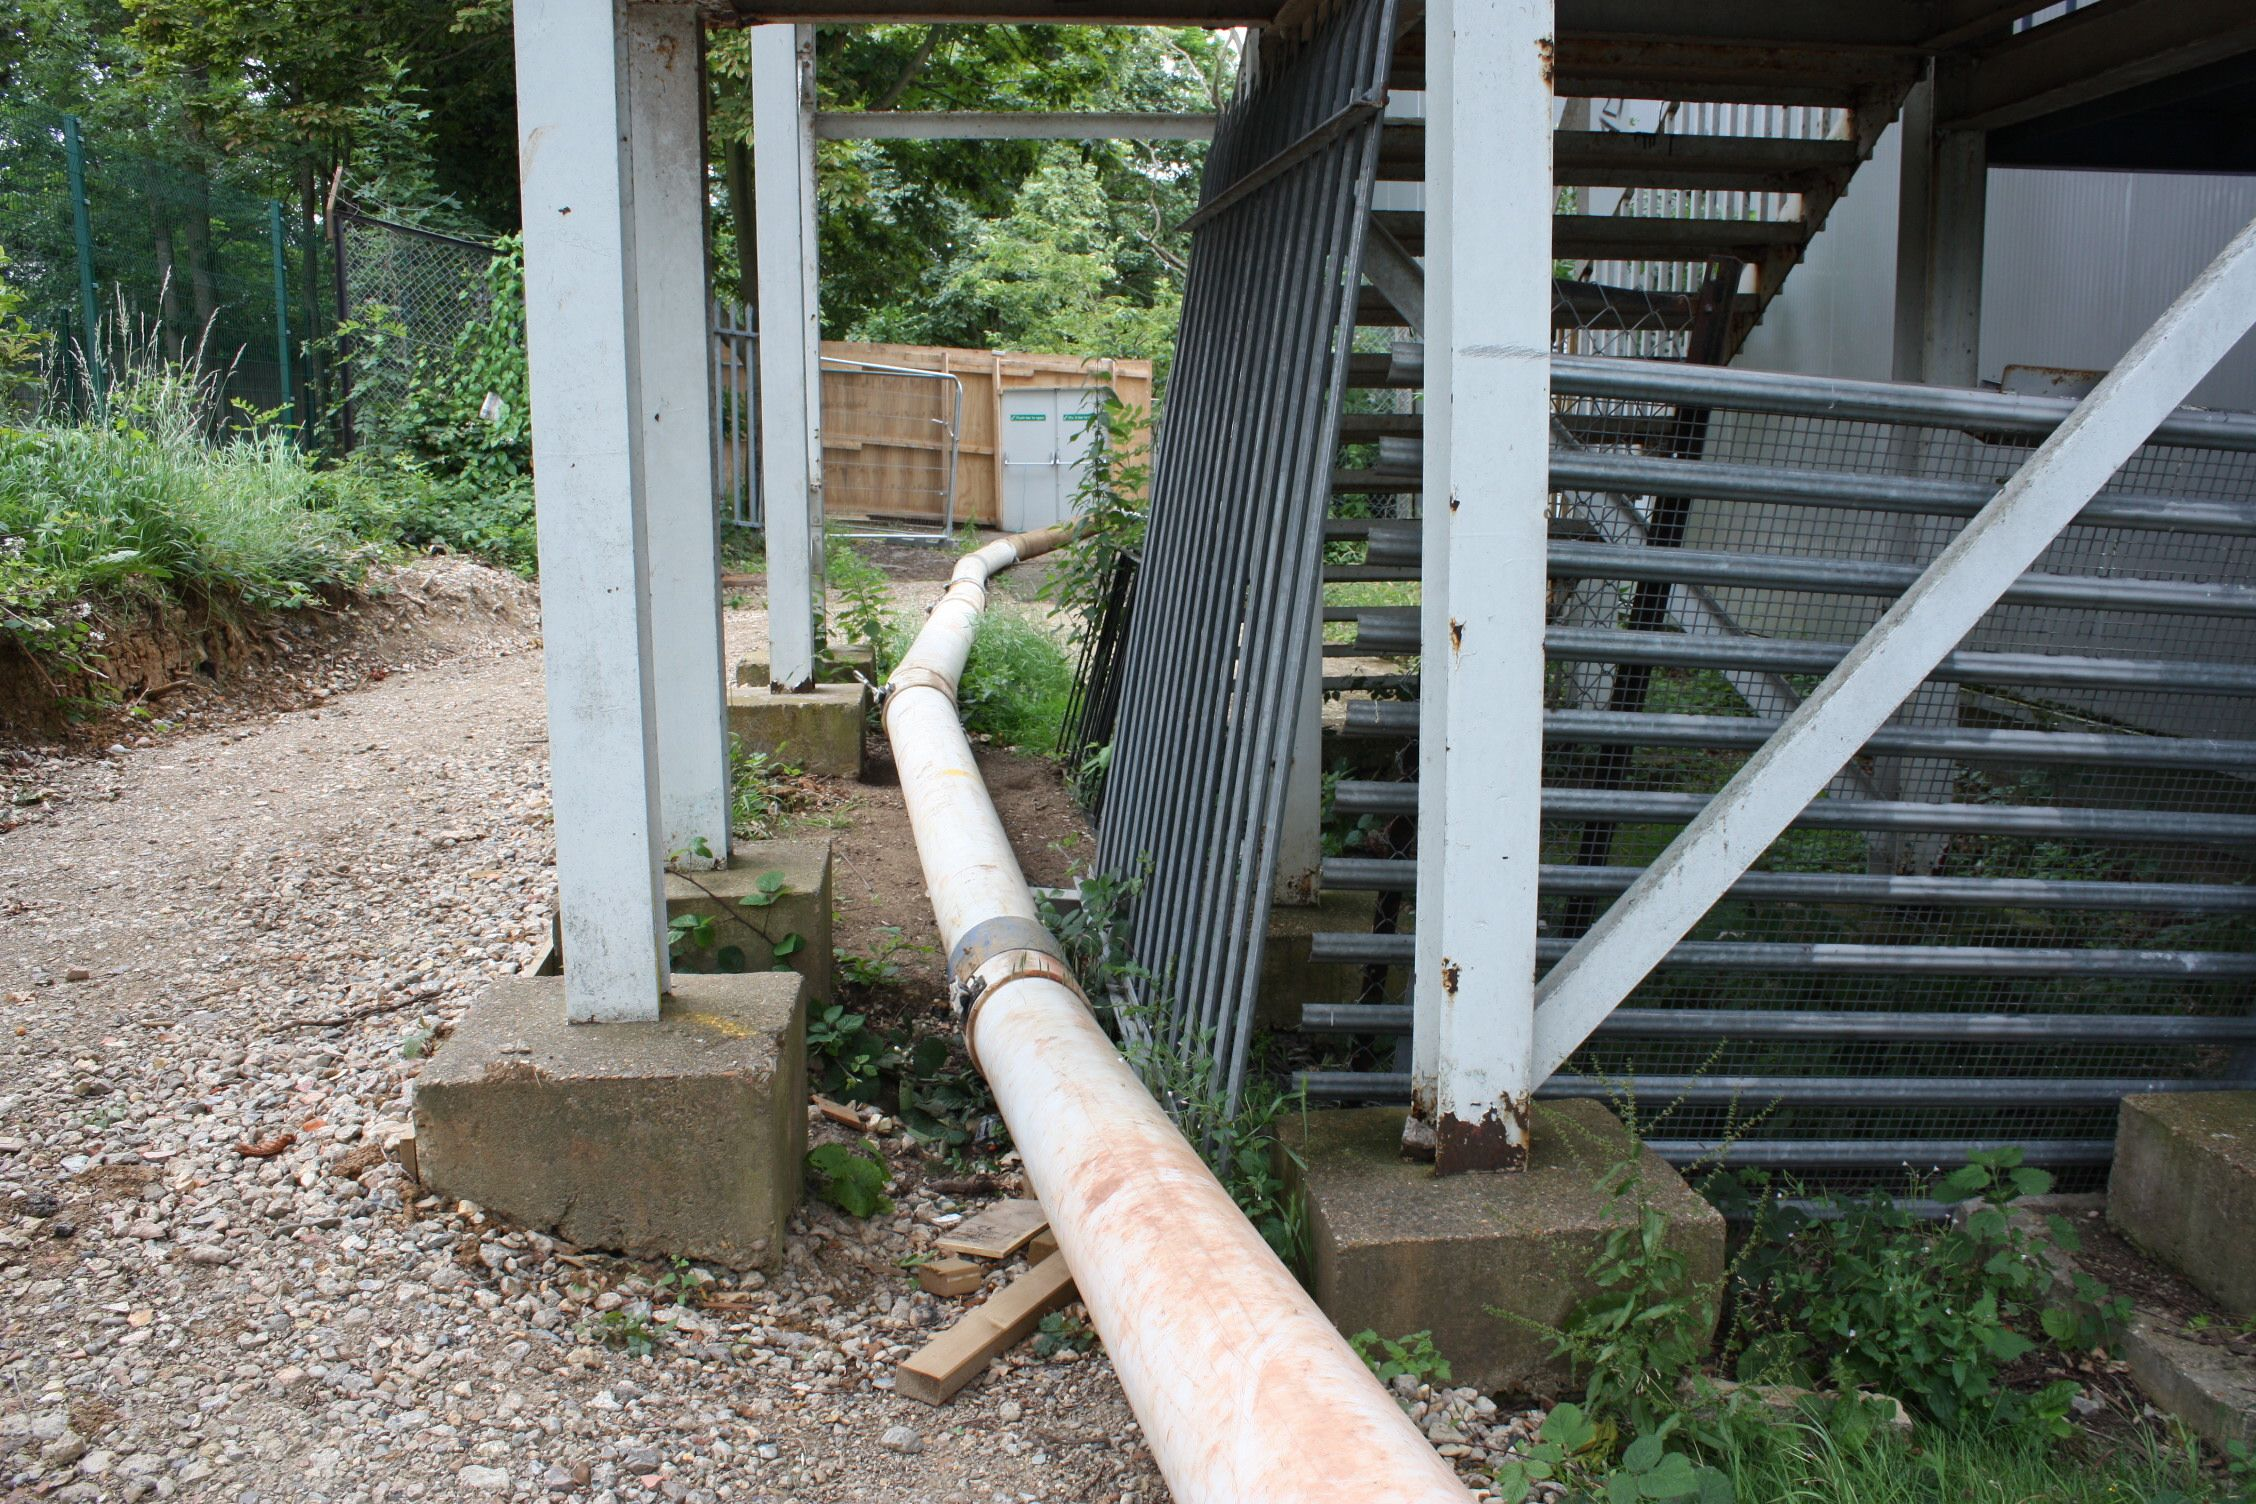 This is another image of the extension hoses reaching the